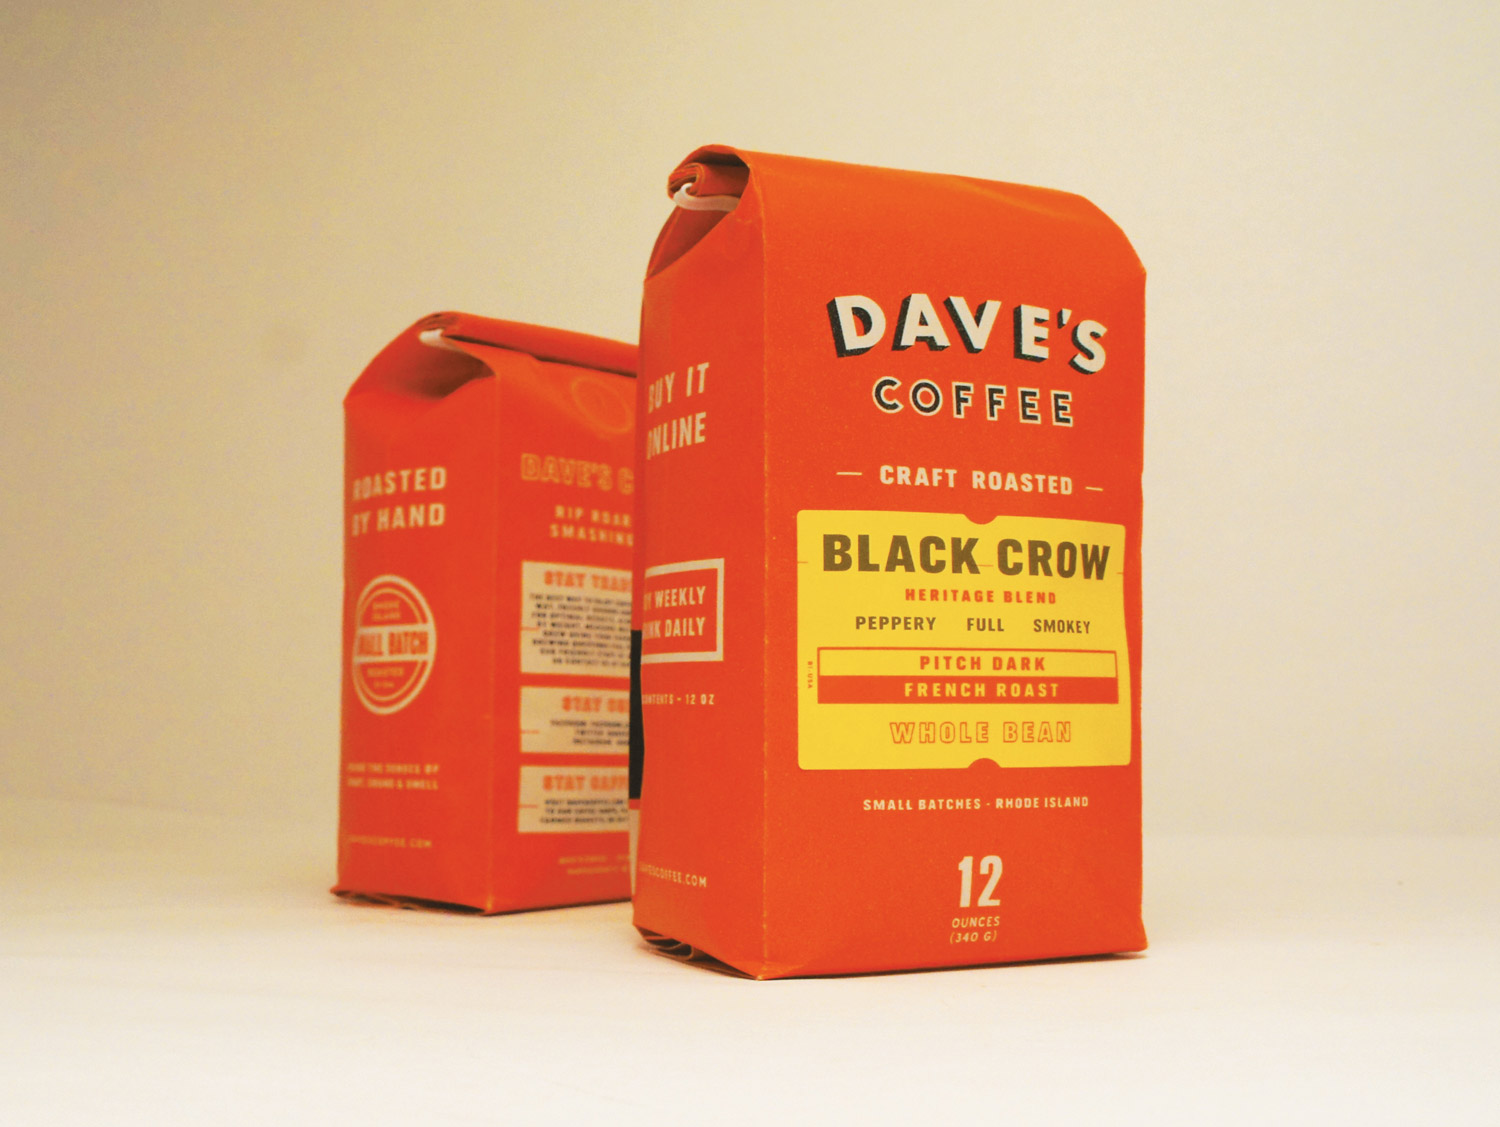 Daves-Coffee-Packaging-002.jpg